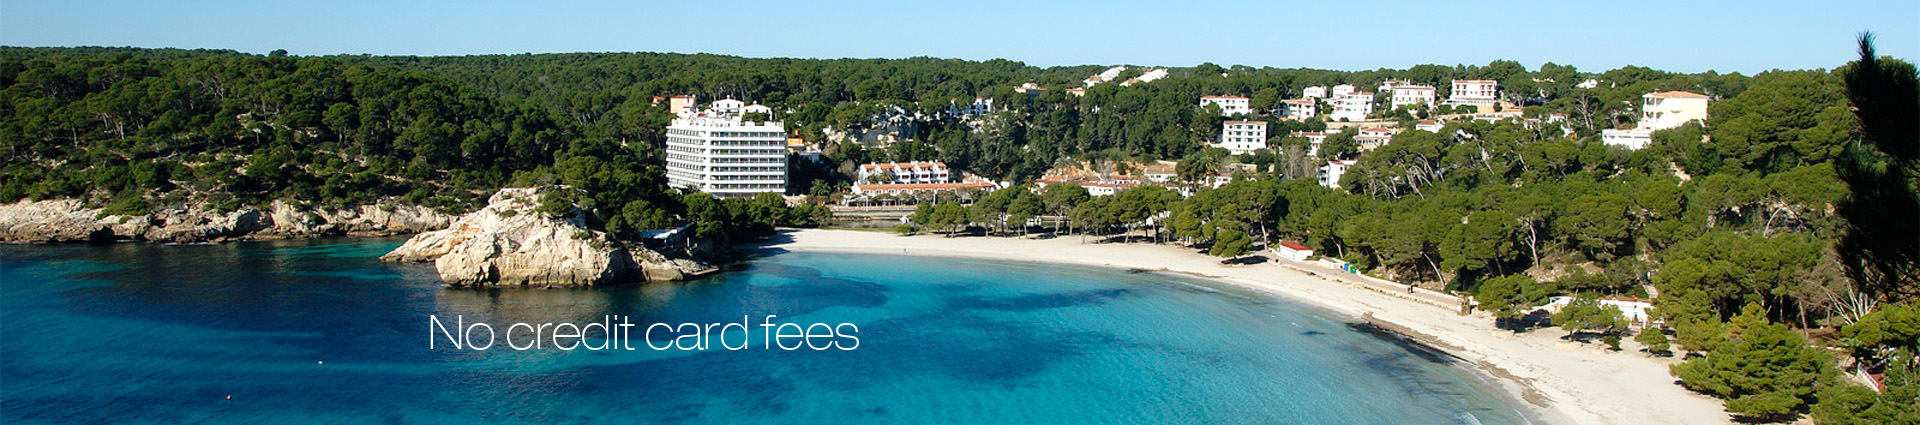 No booking fees or credit card charges - Menorca accommodation